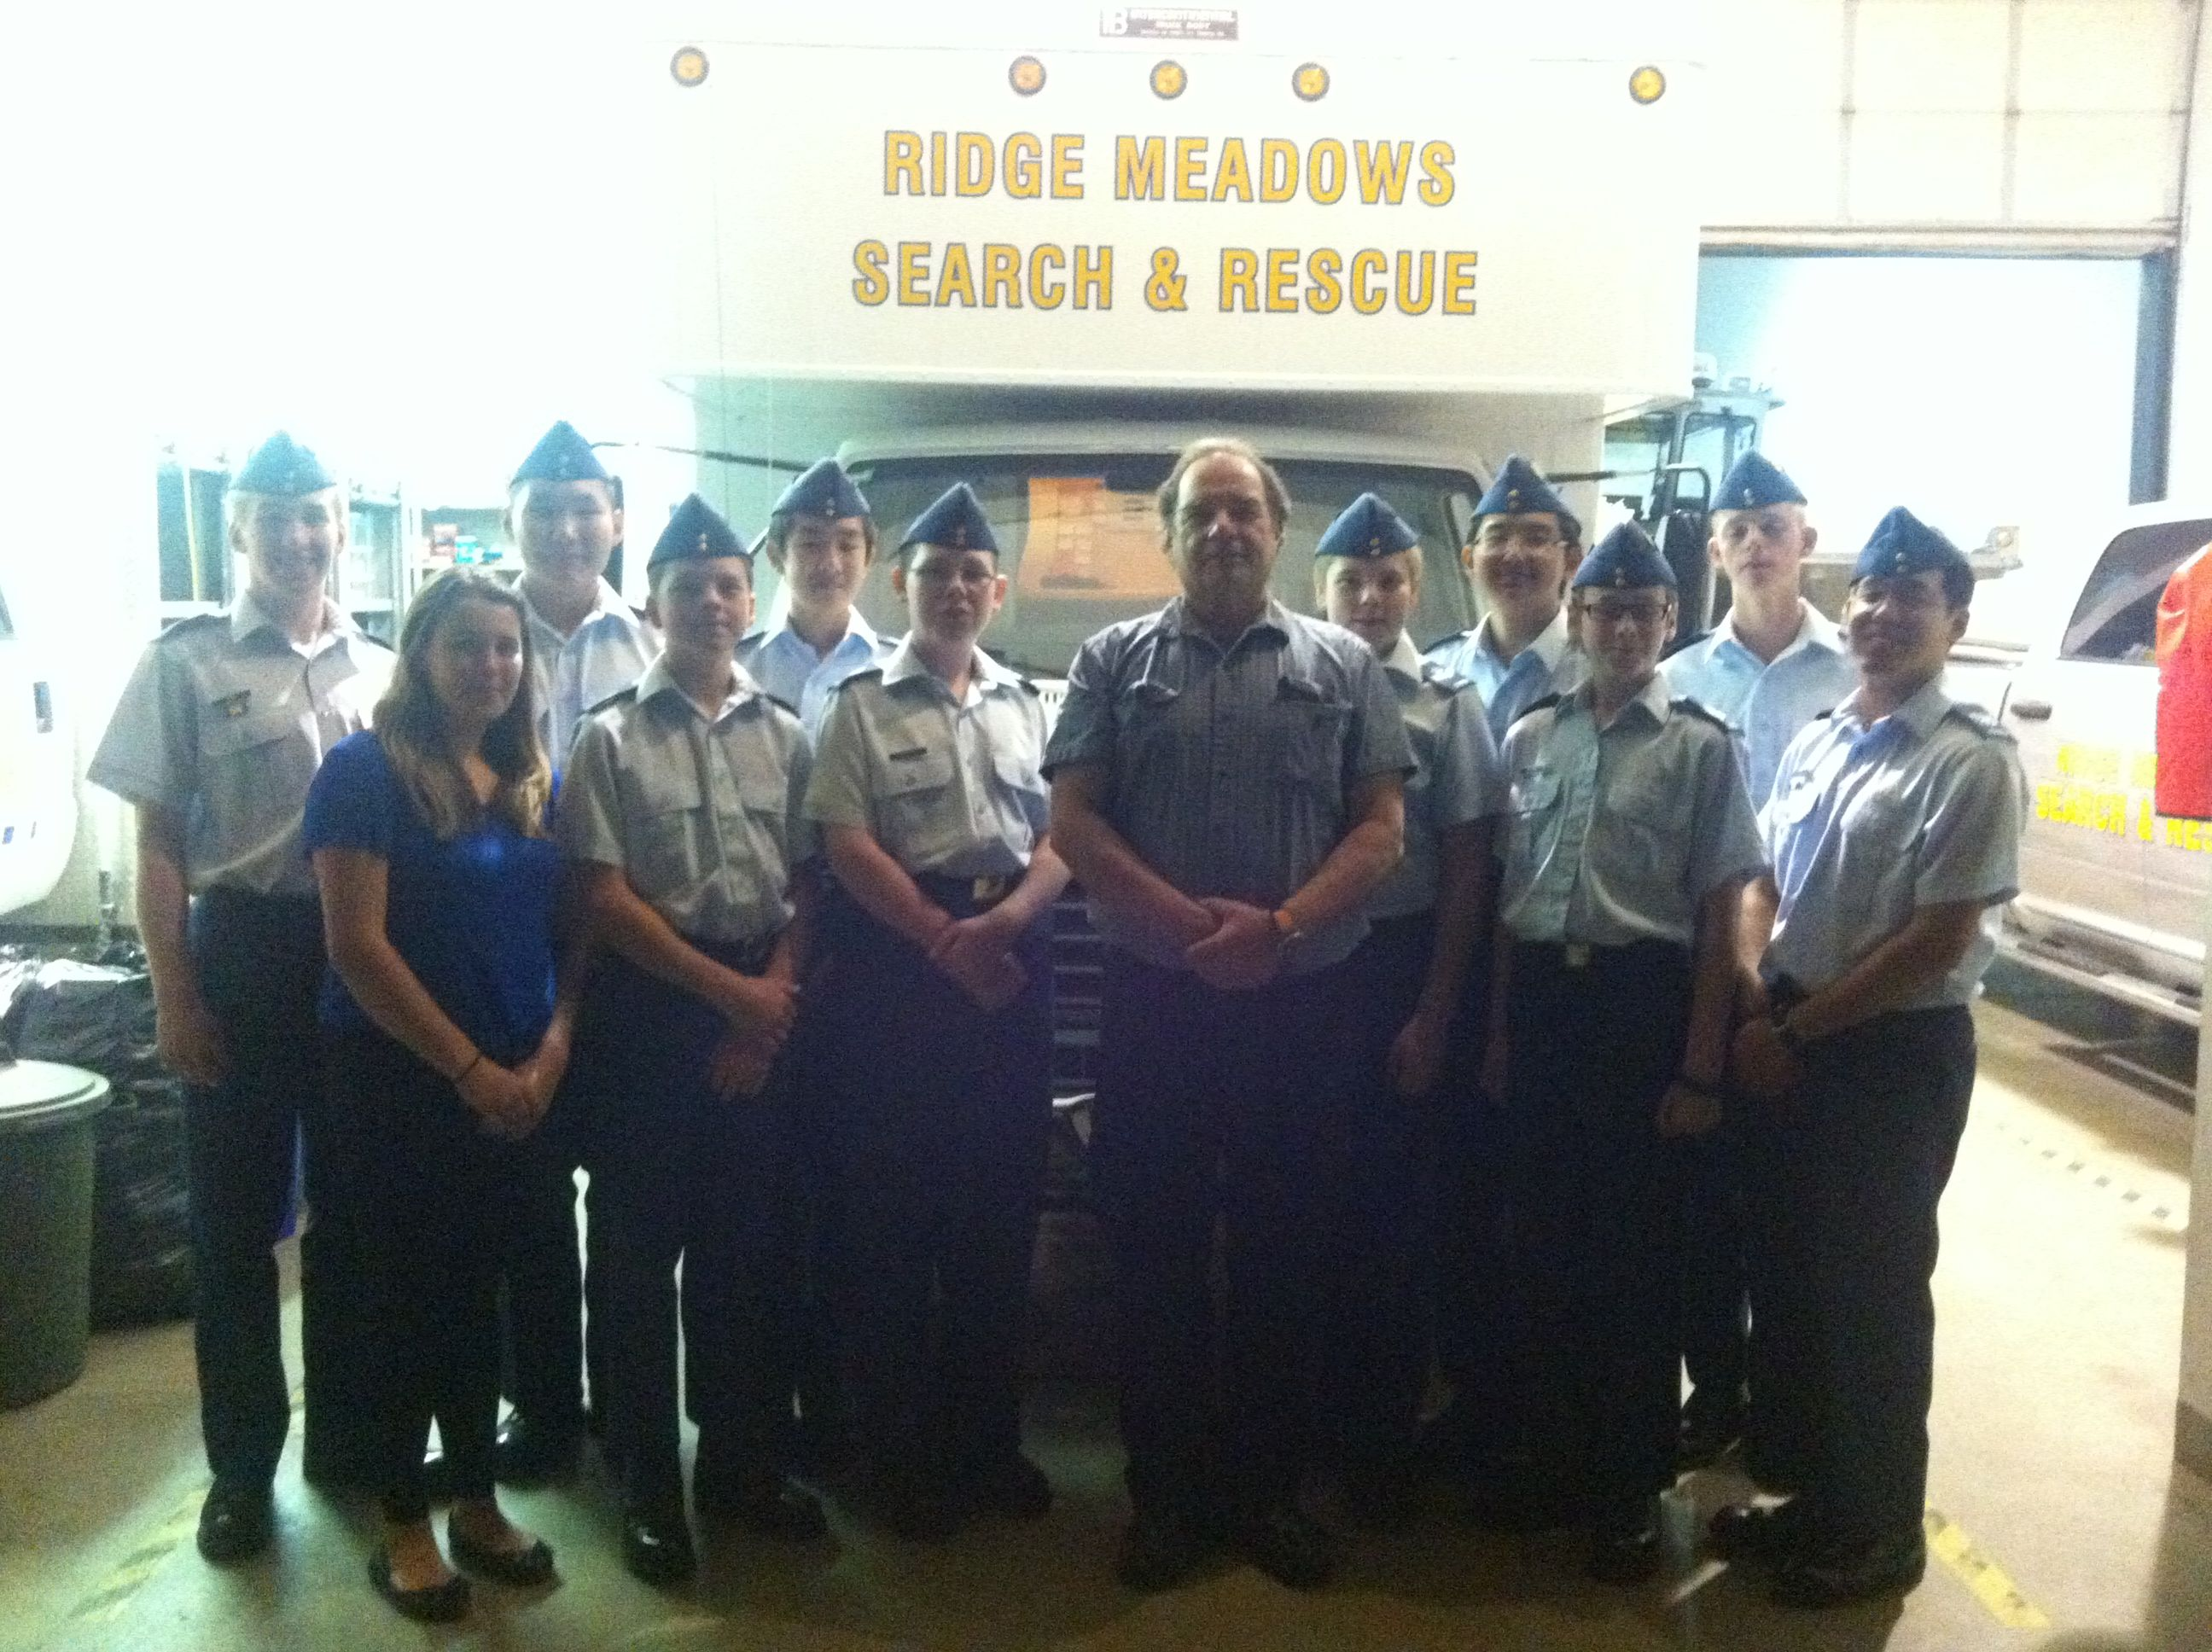 Level 3 Cadets Visit Ridge Meadows Search and Rescue (SAR), 2 Oct 14